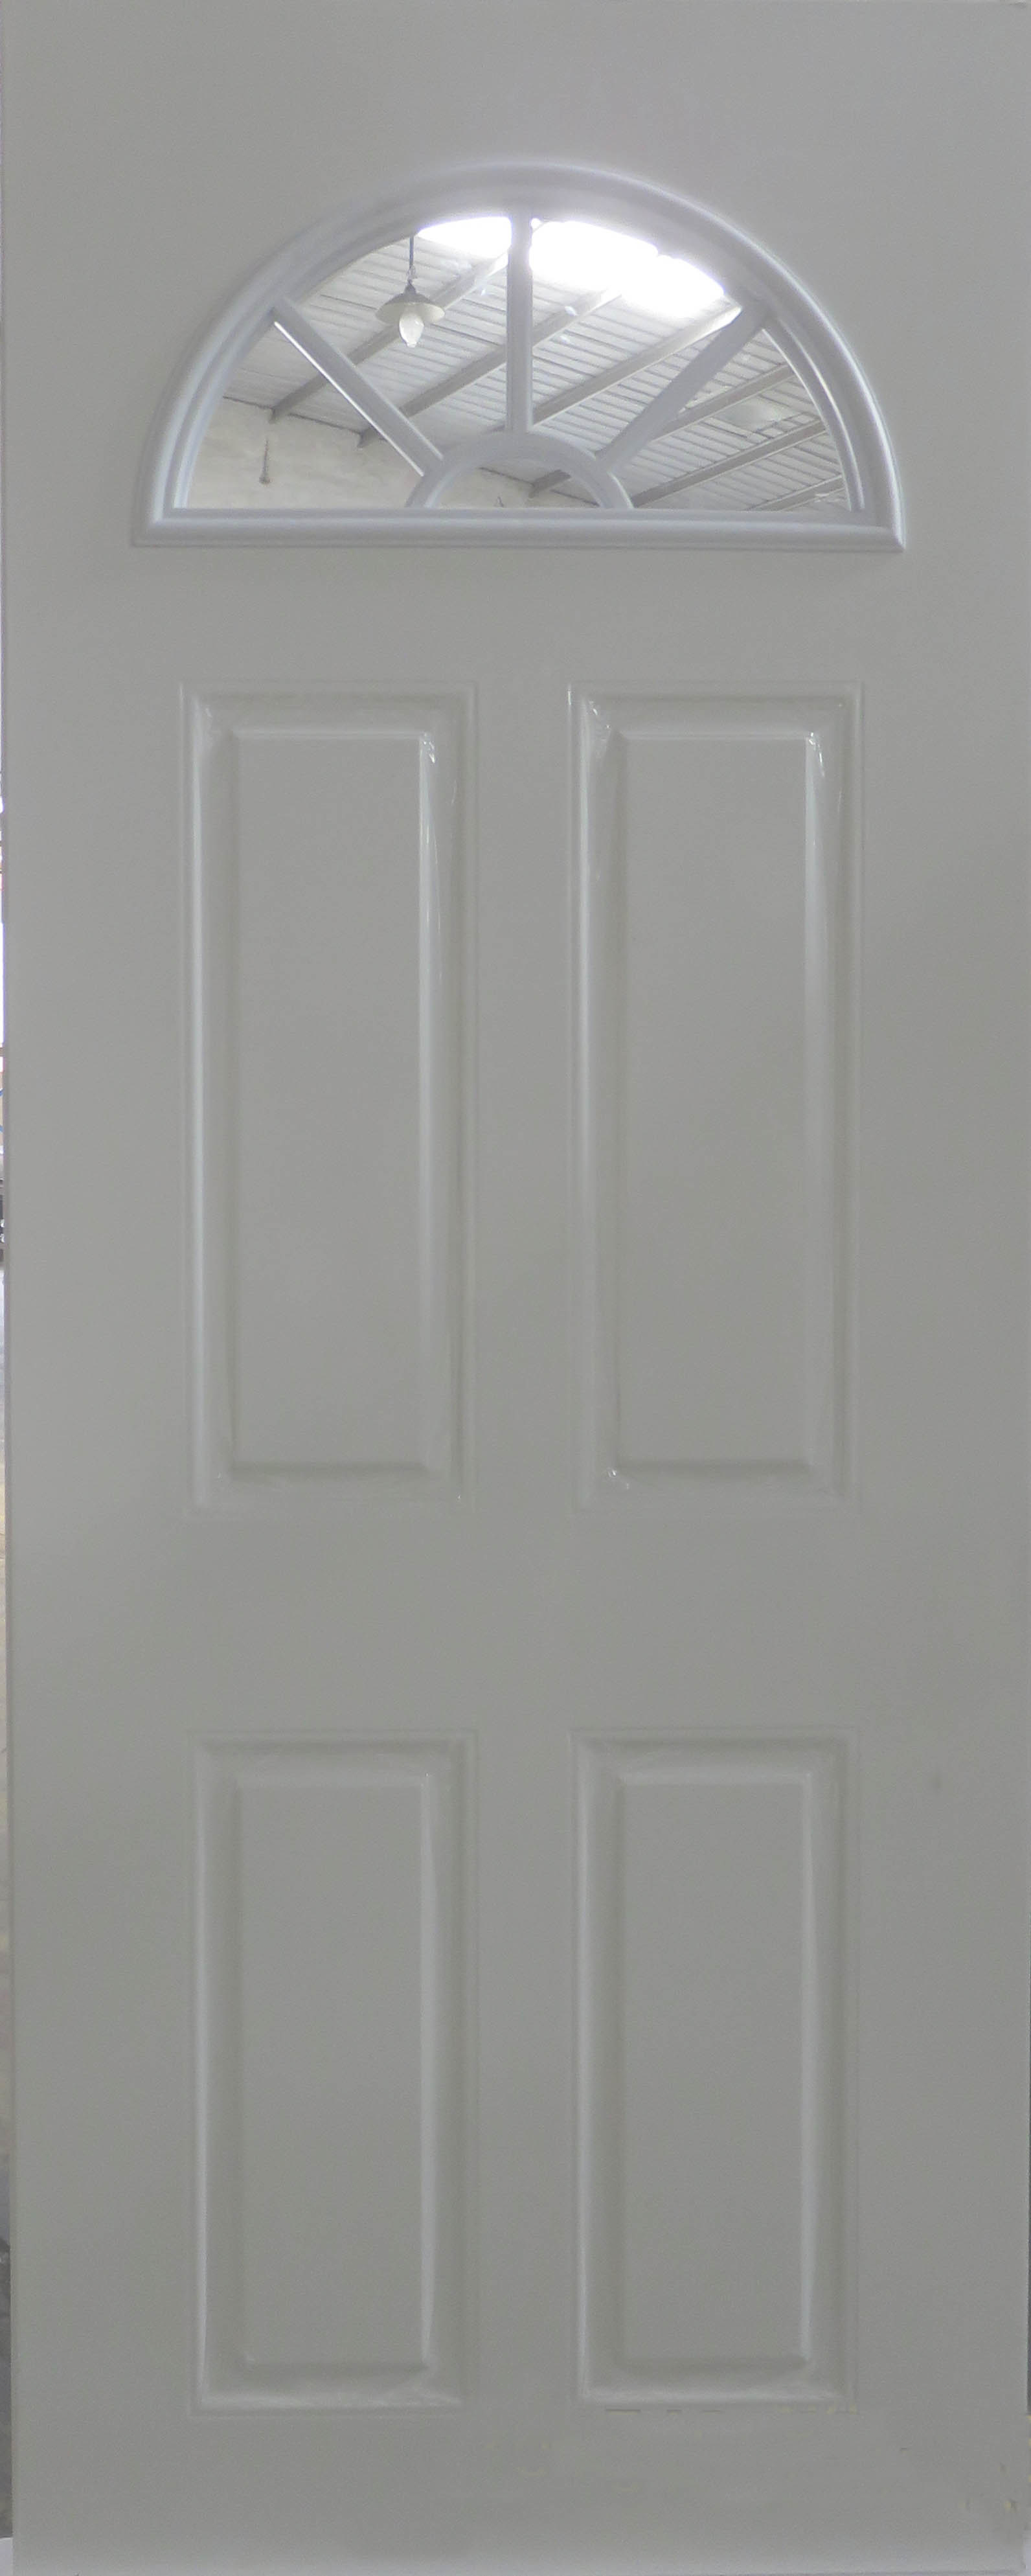 Most Popular 6 Panel American Steel Door